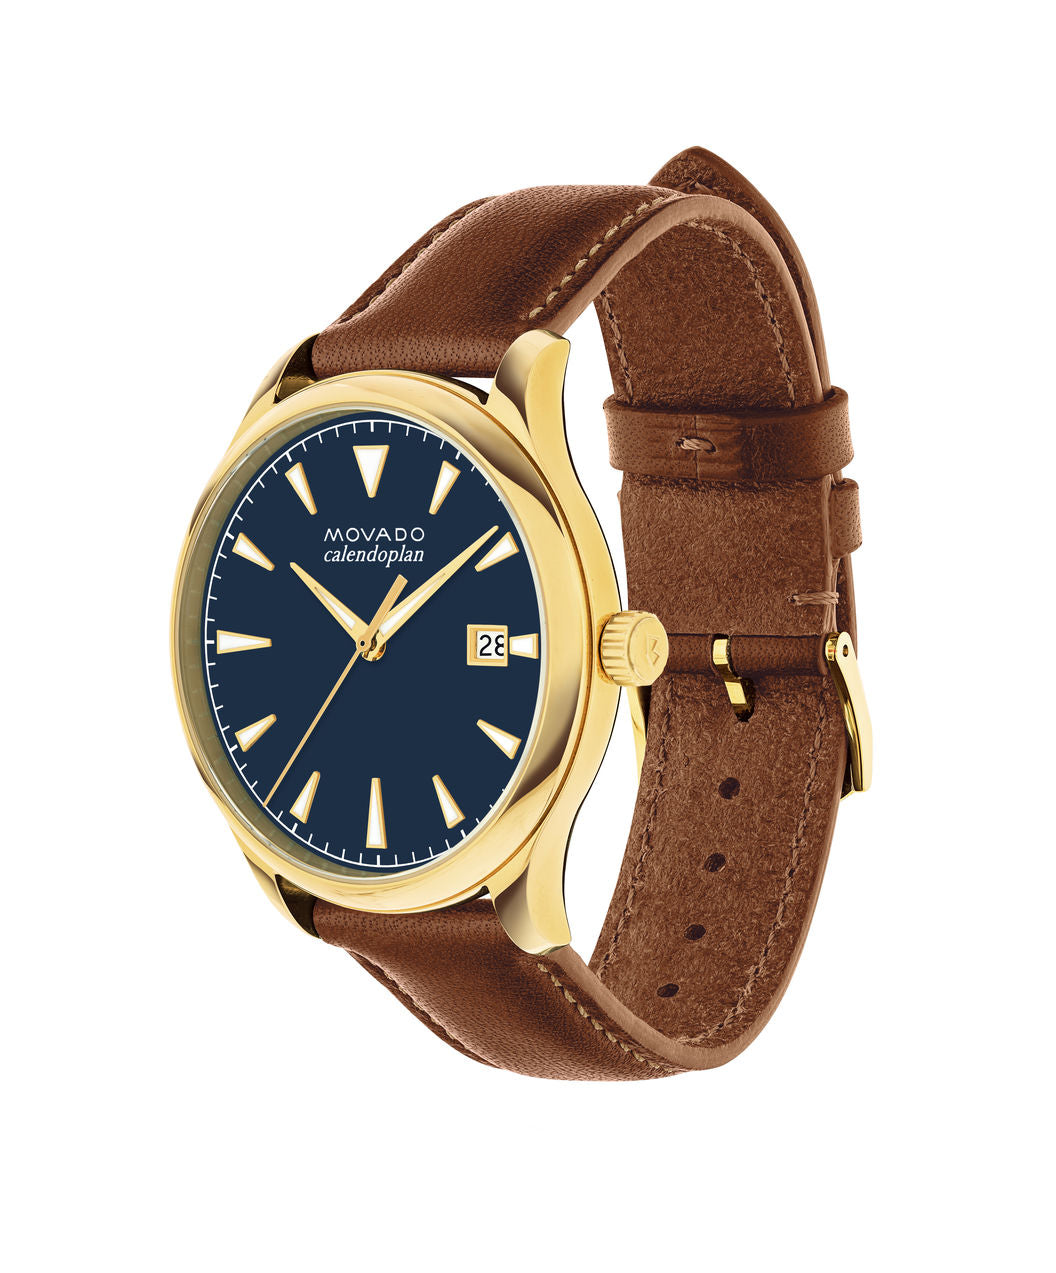 Movado Watch Heritage Series - Calendoplan Gold Tone with cognac Leather